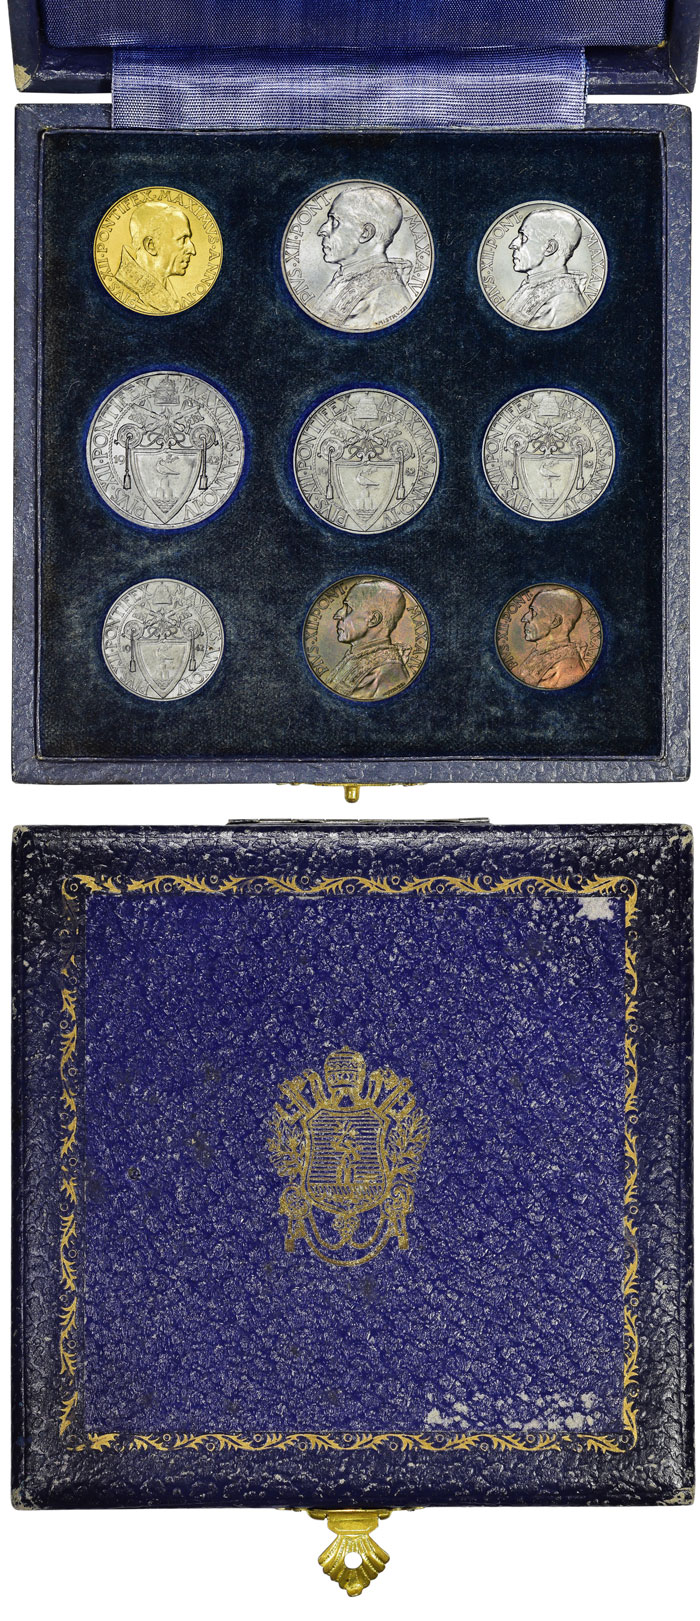 1942 Vatican Mint Set 9 Coins With Case Photo